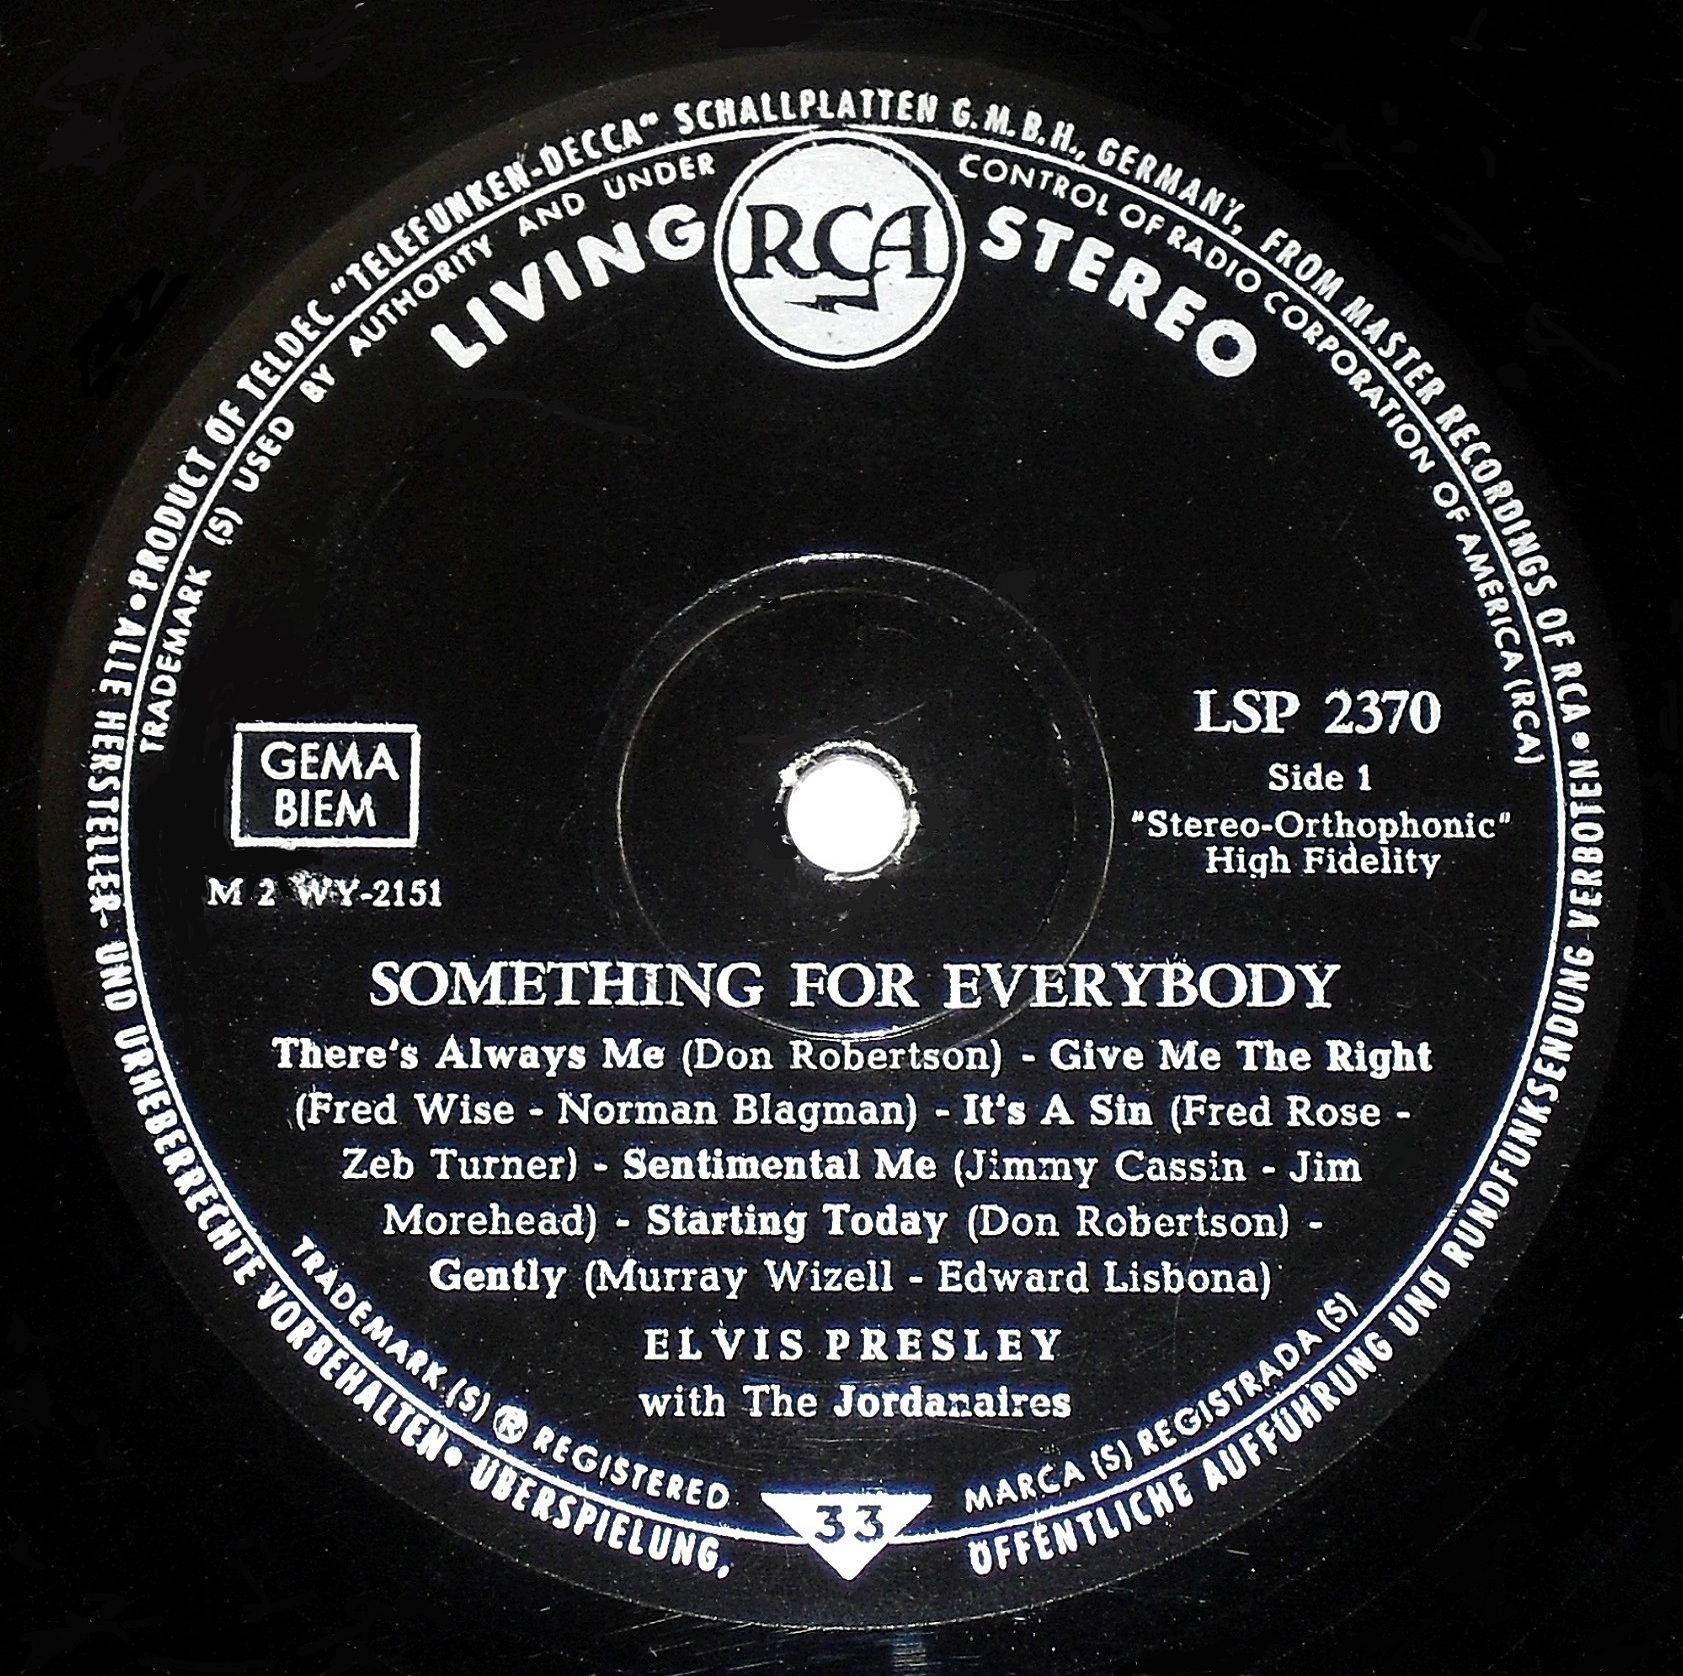 SOMETHING FOR EVERYBODY 03s1..61qrr